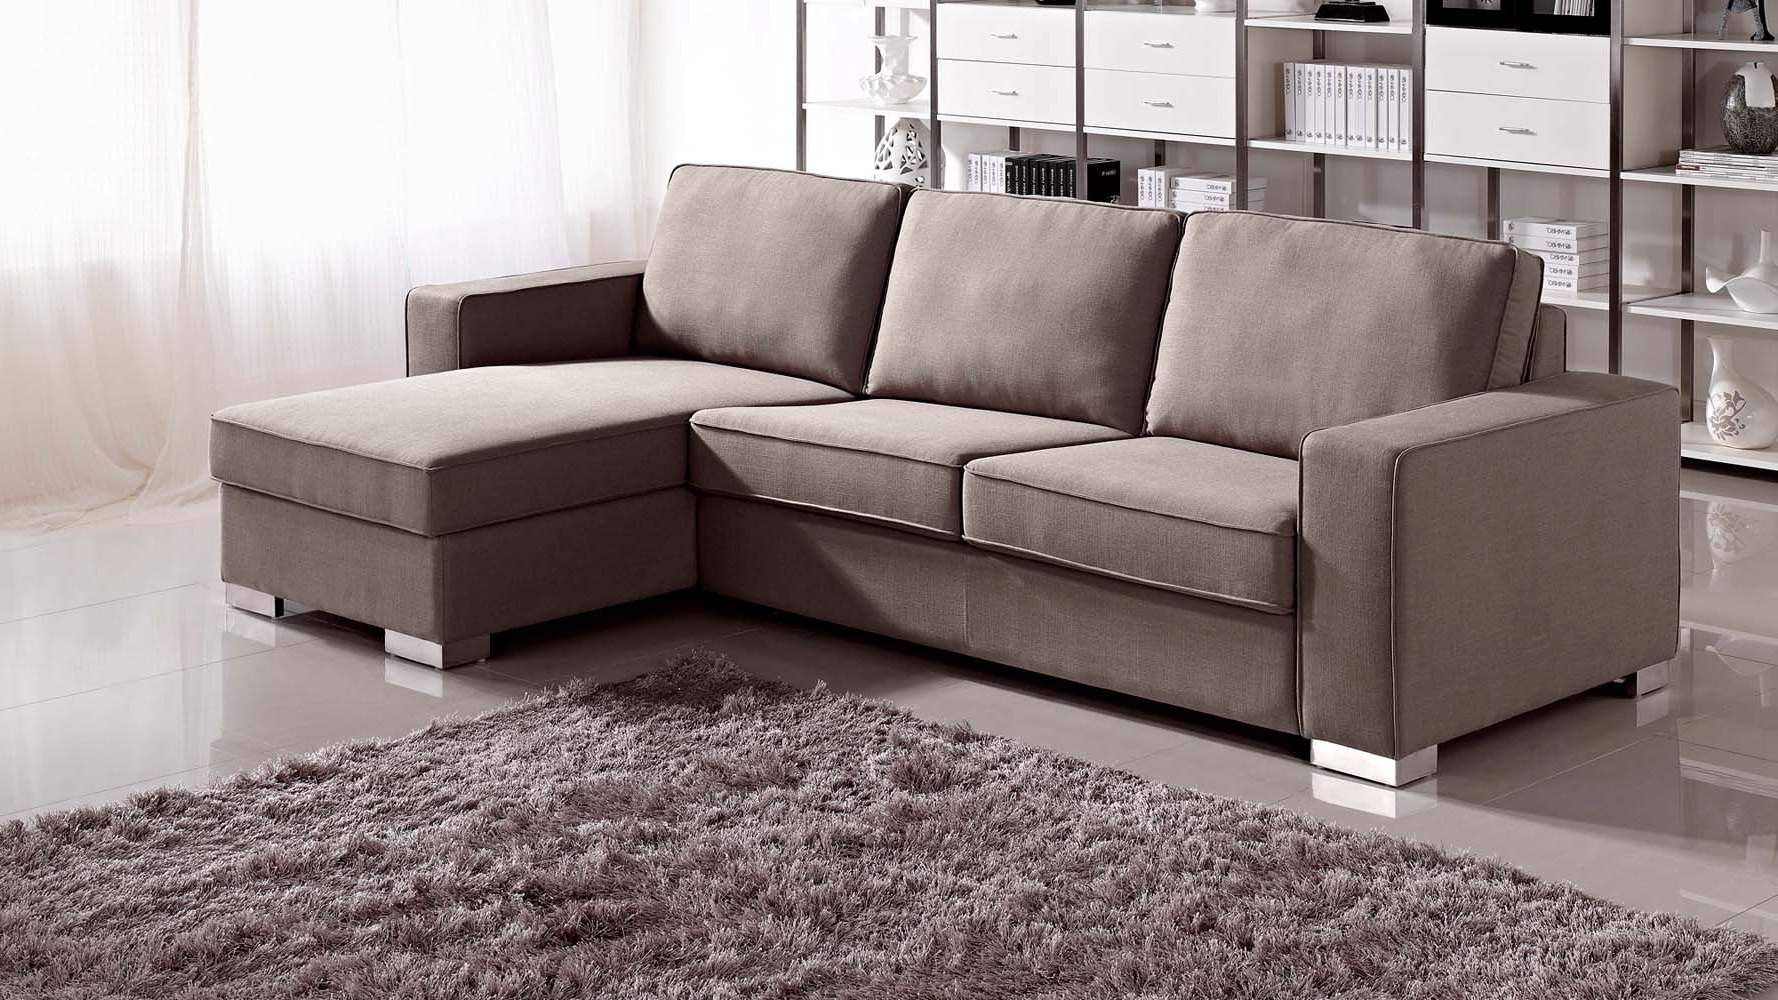 12 Best Of Craftsman Sectional Sofa : craftsman sectional sofa - Sectionals, Sofas & Couches